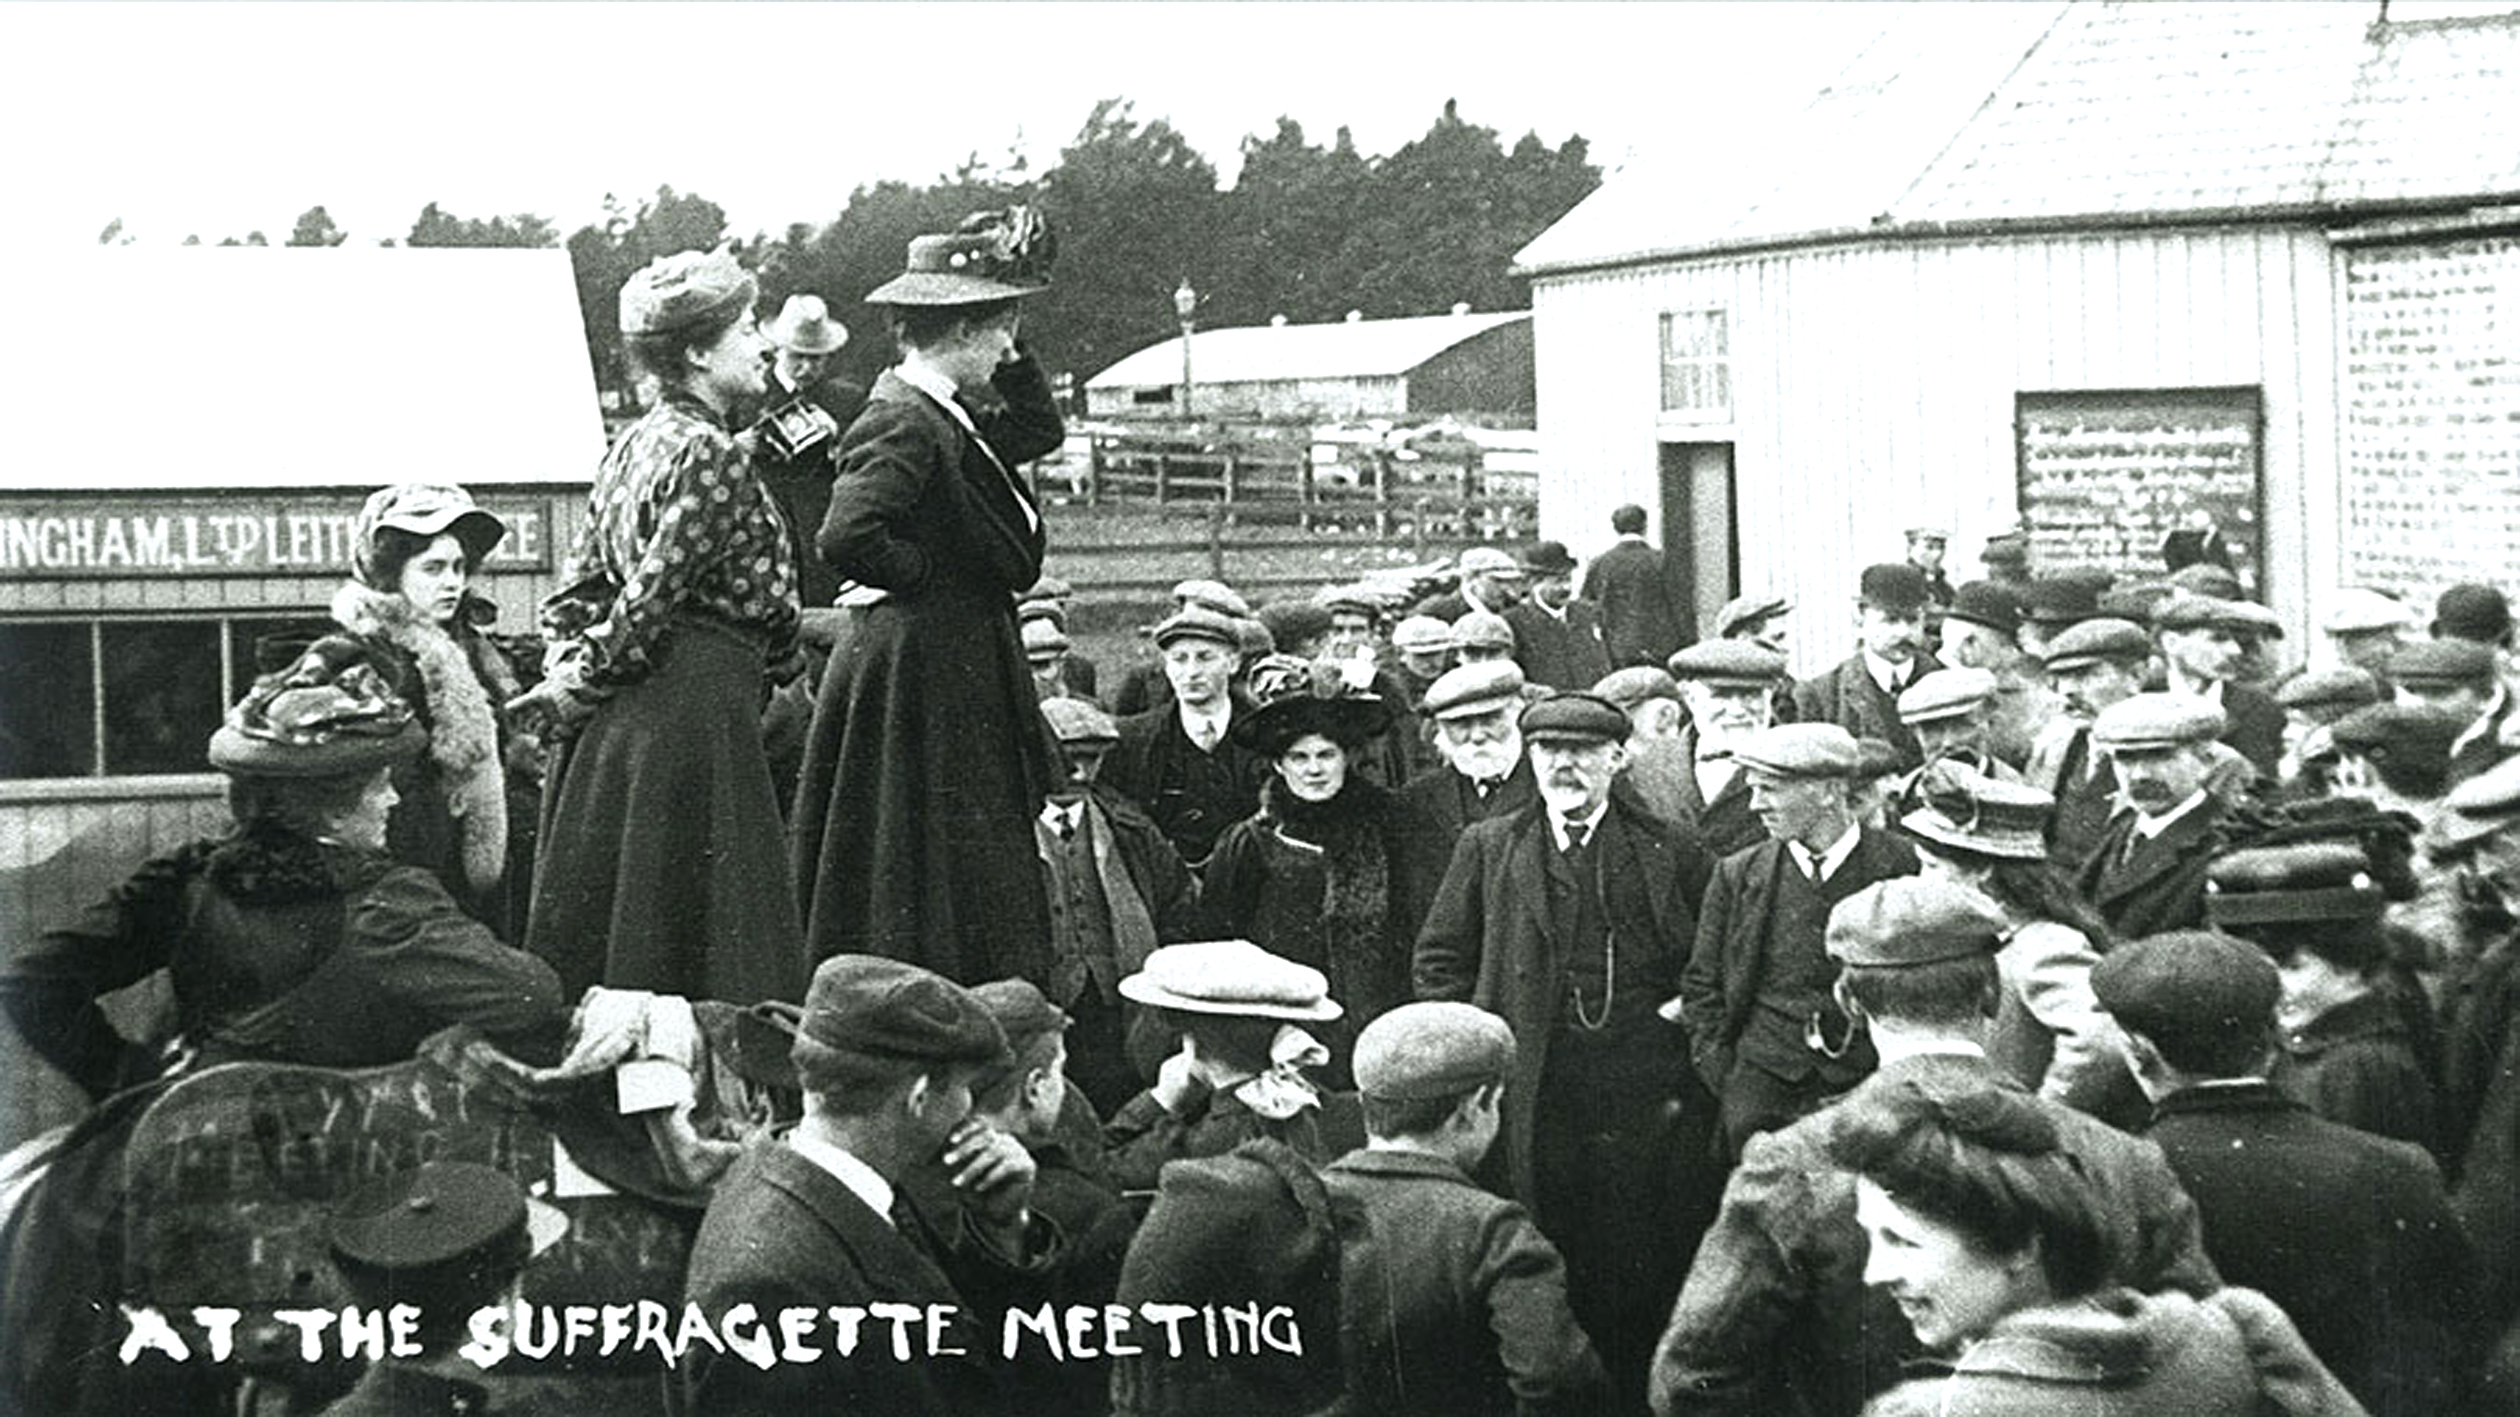 Caroline Phillips from Kintore was one of the leading Scottish suffragettes.